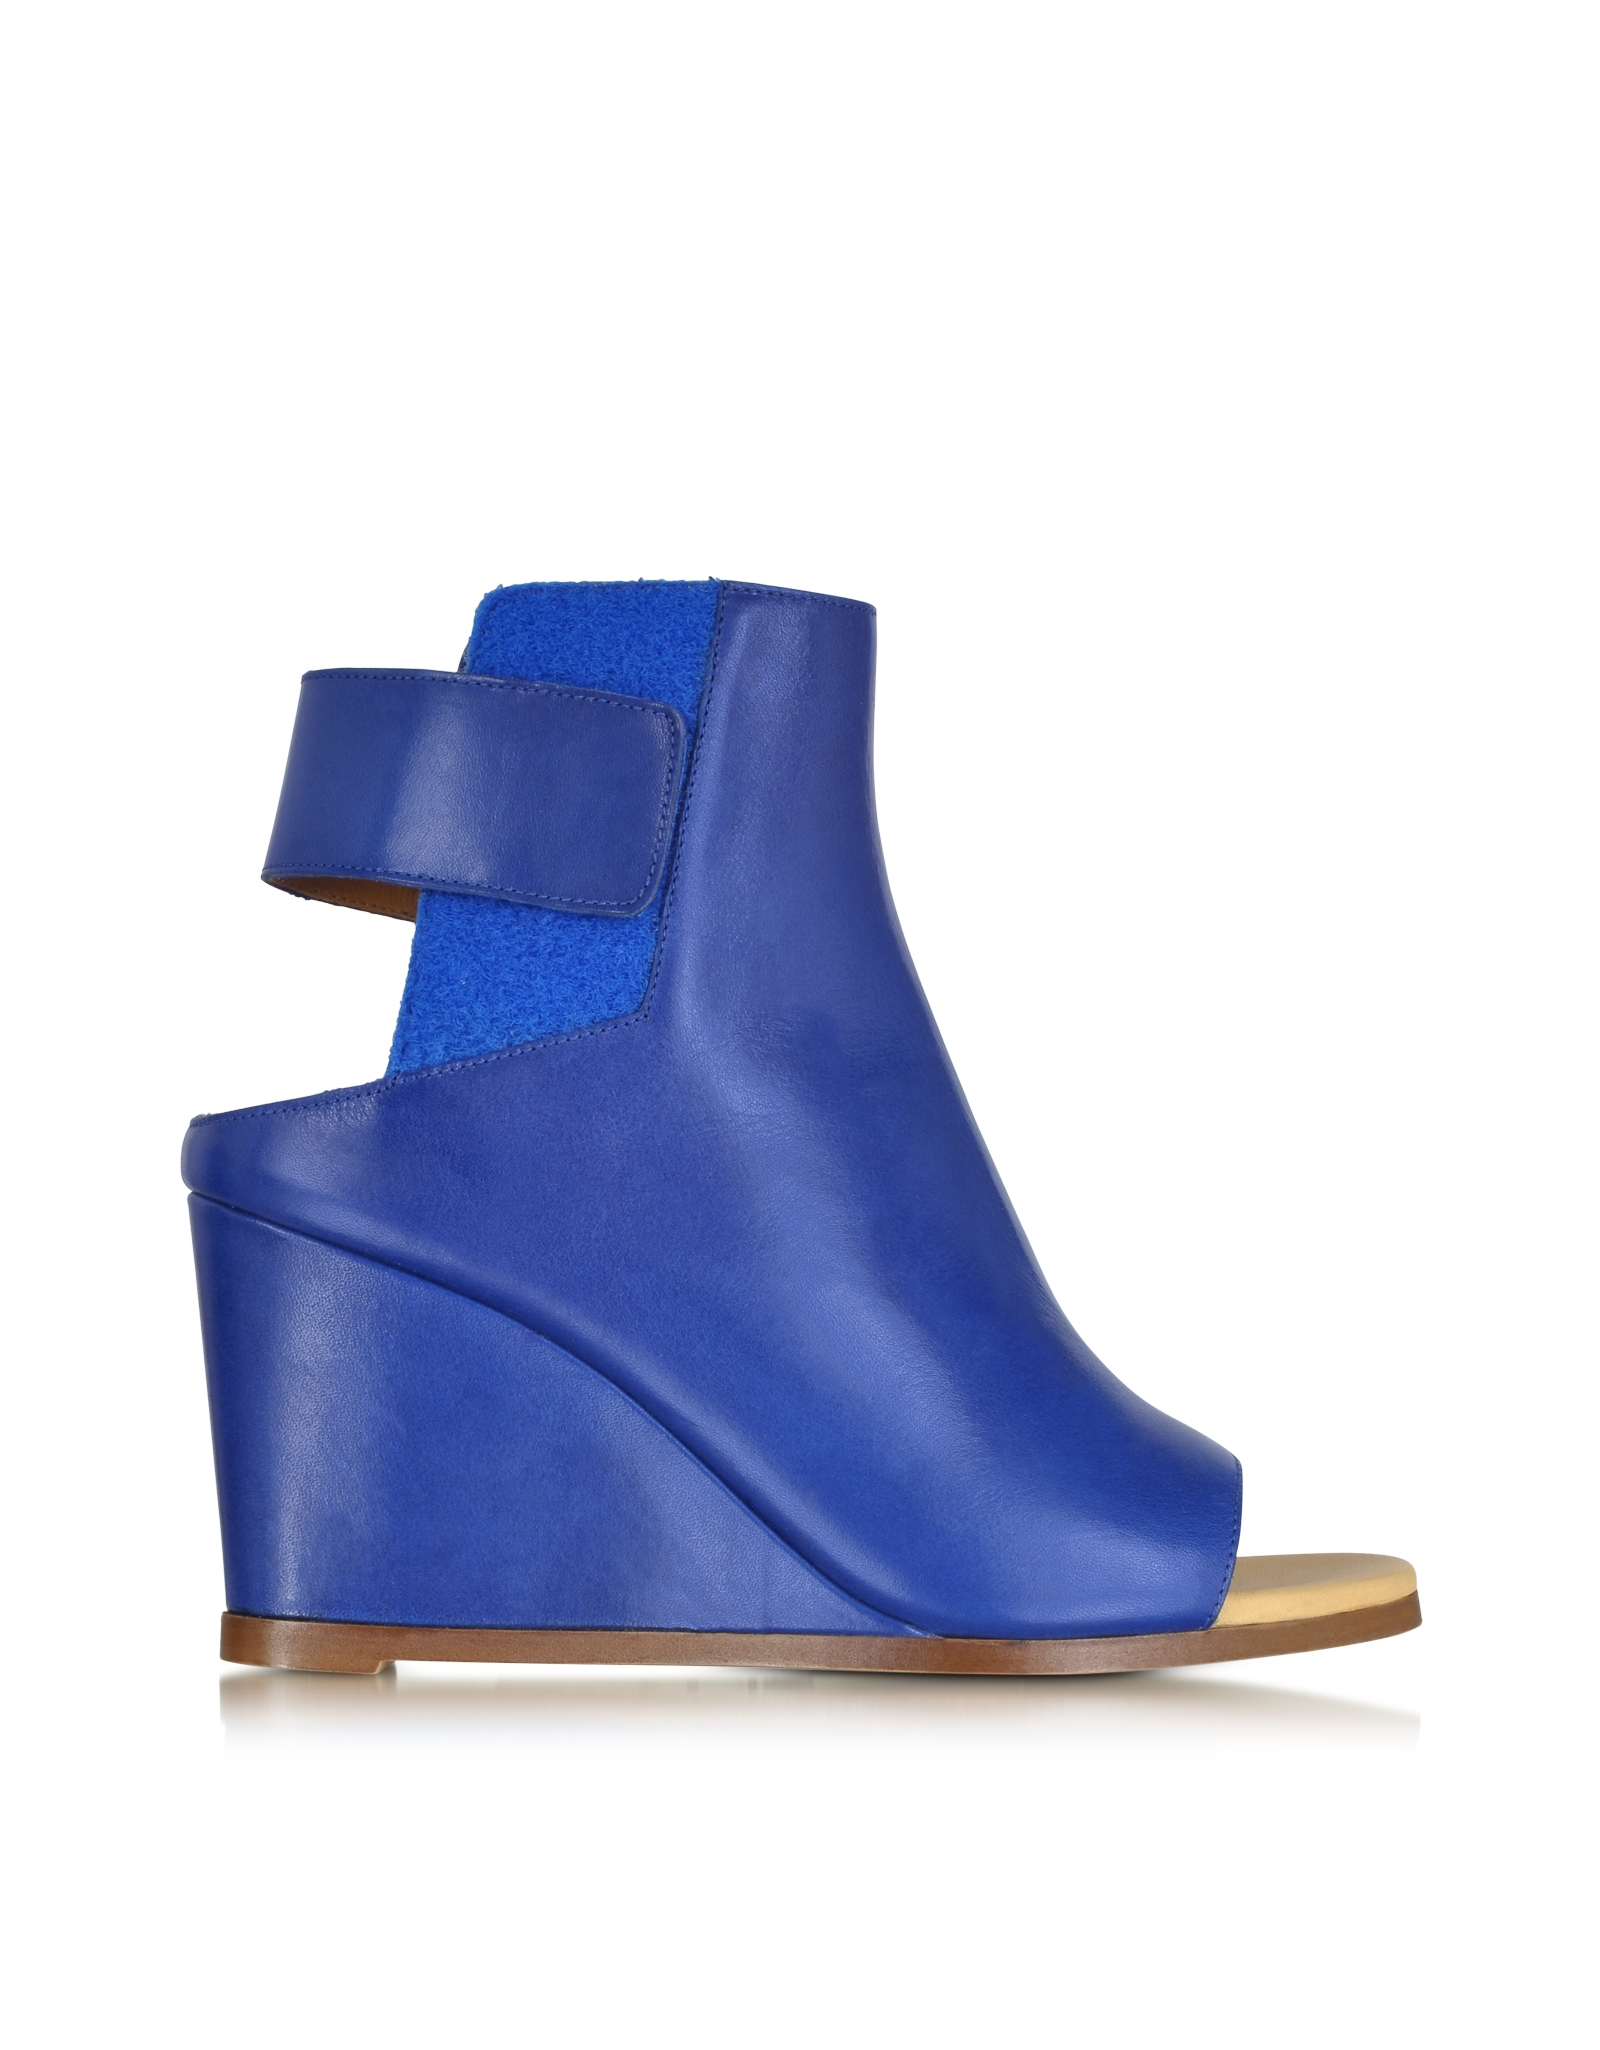 mm6 by maison martin margiela blue leather wedge ankle